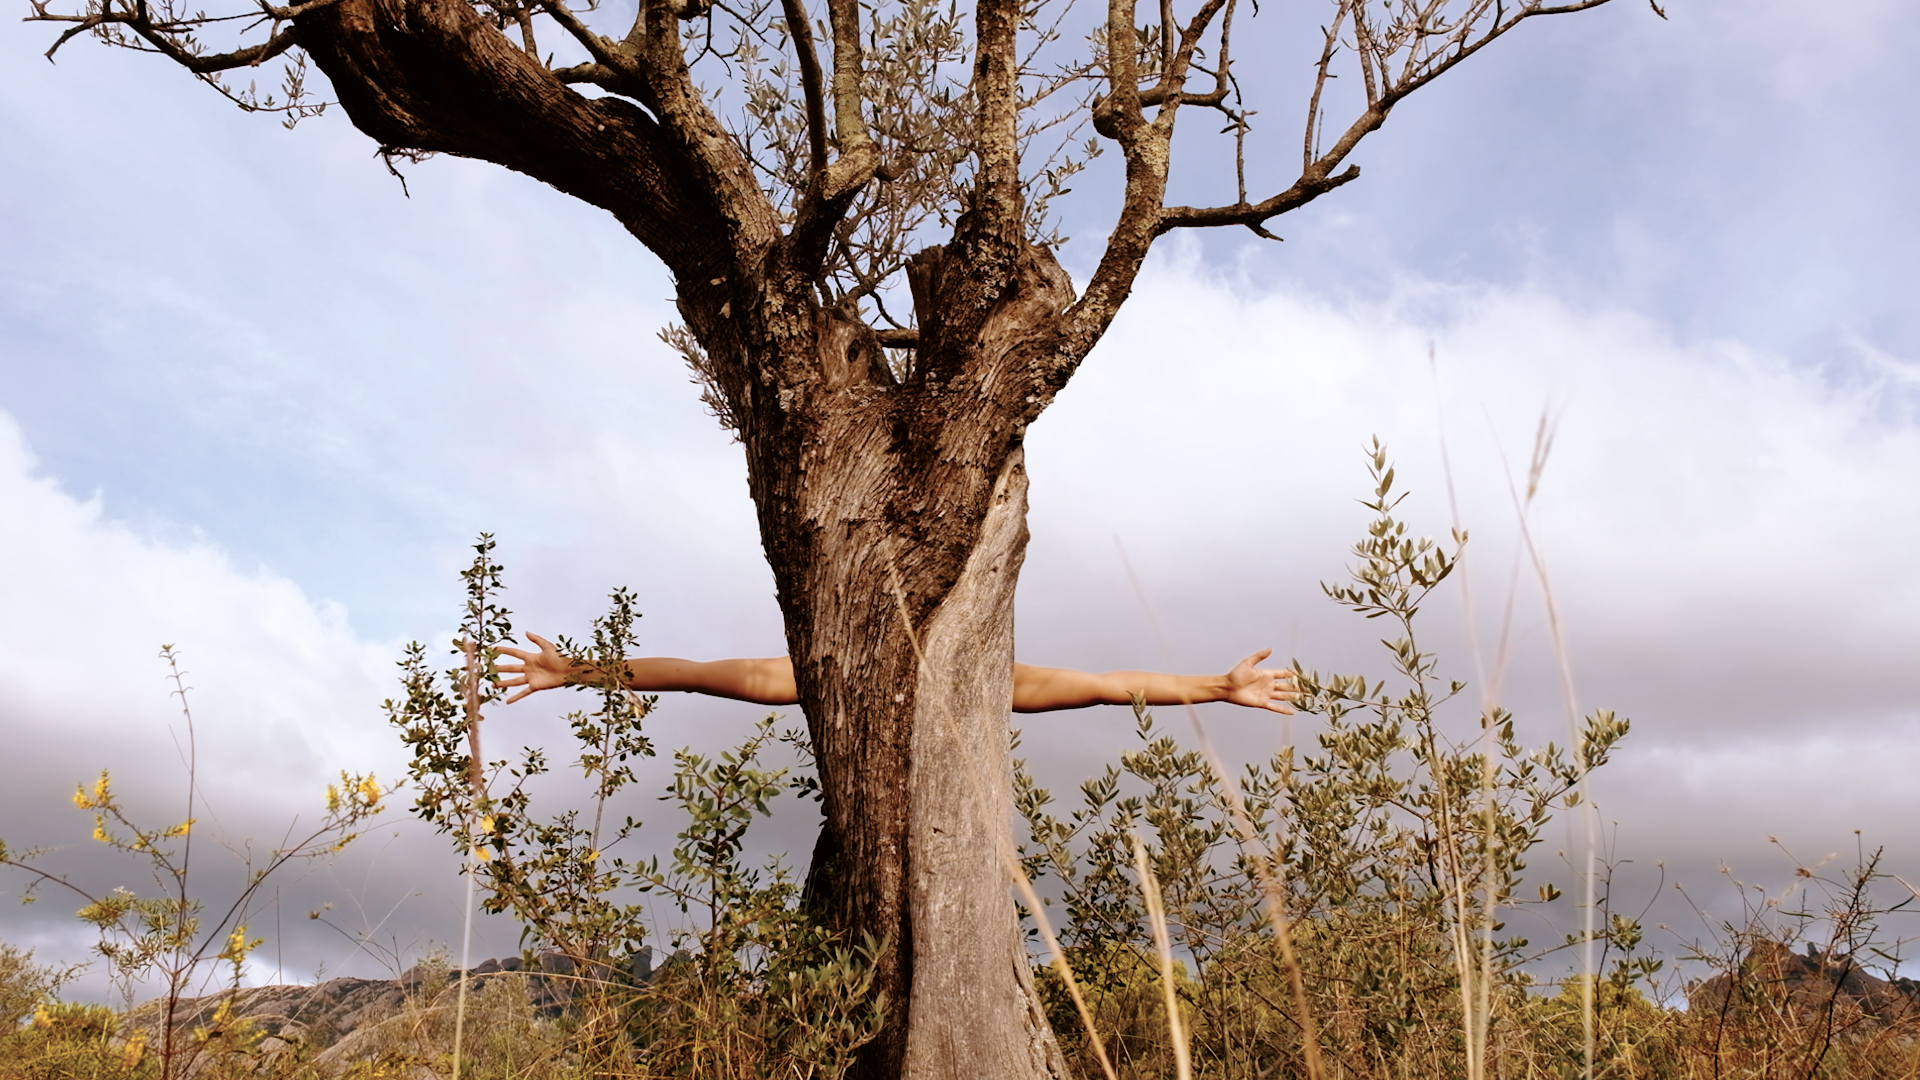 tree with arms protruding